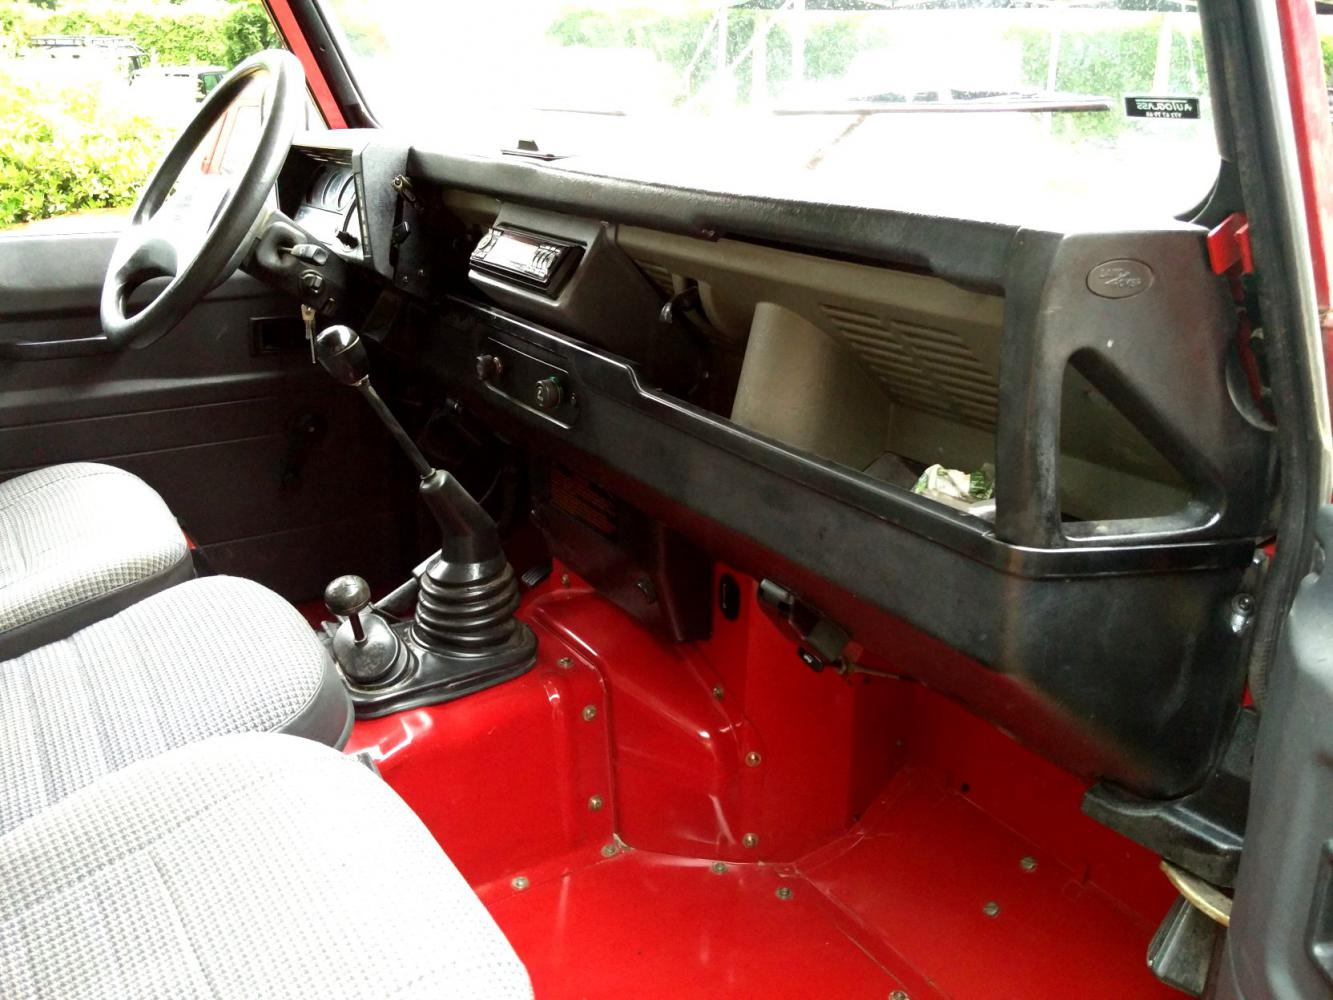 Click image for larger version  Name:1992 LR LHD Defender 90 Red 200 Tdi interior dash and trim.jpg Views:239 Size:149.5 KB ID:263666